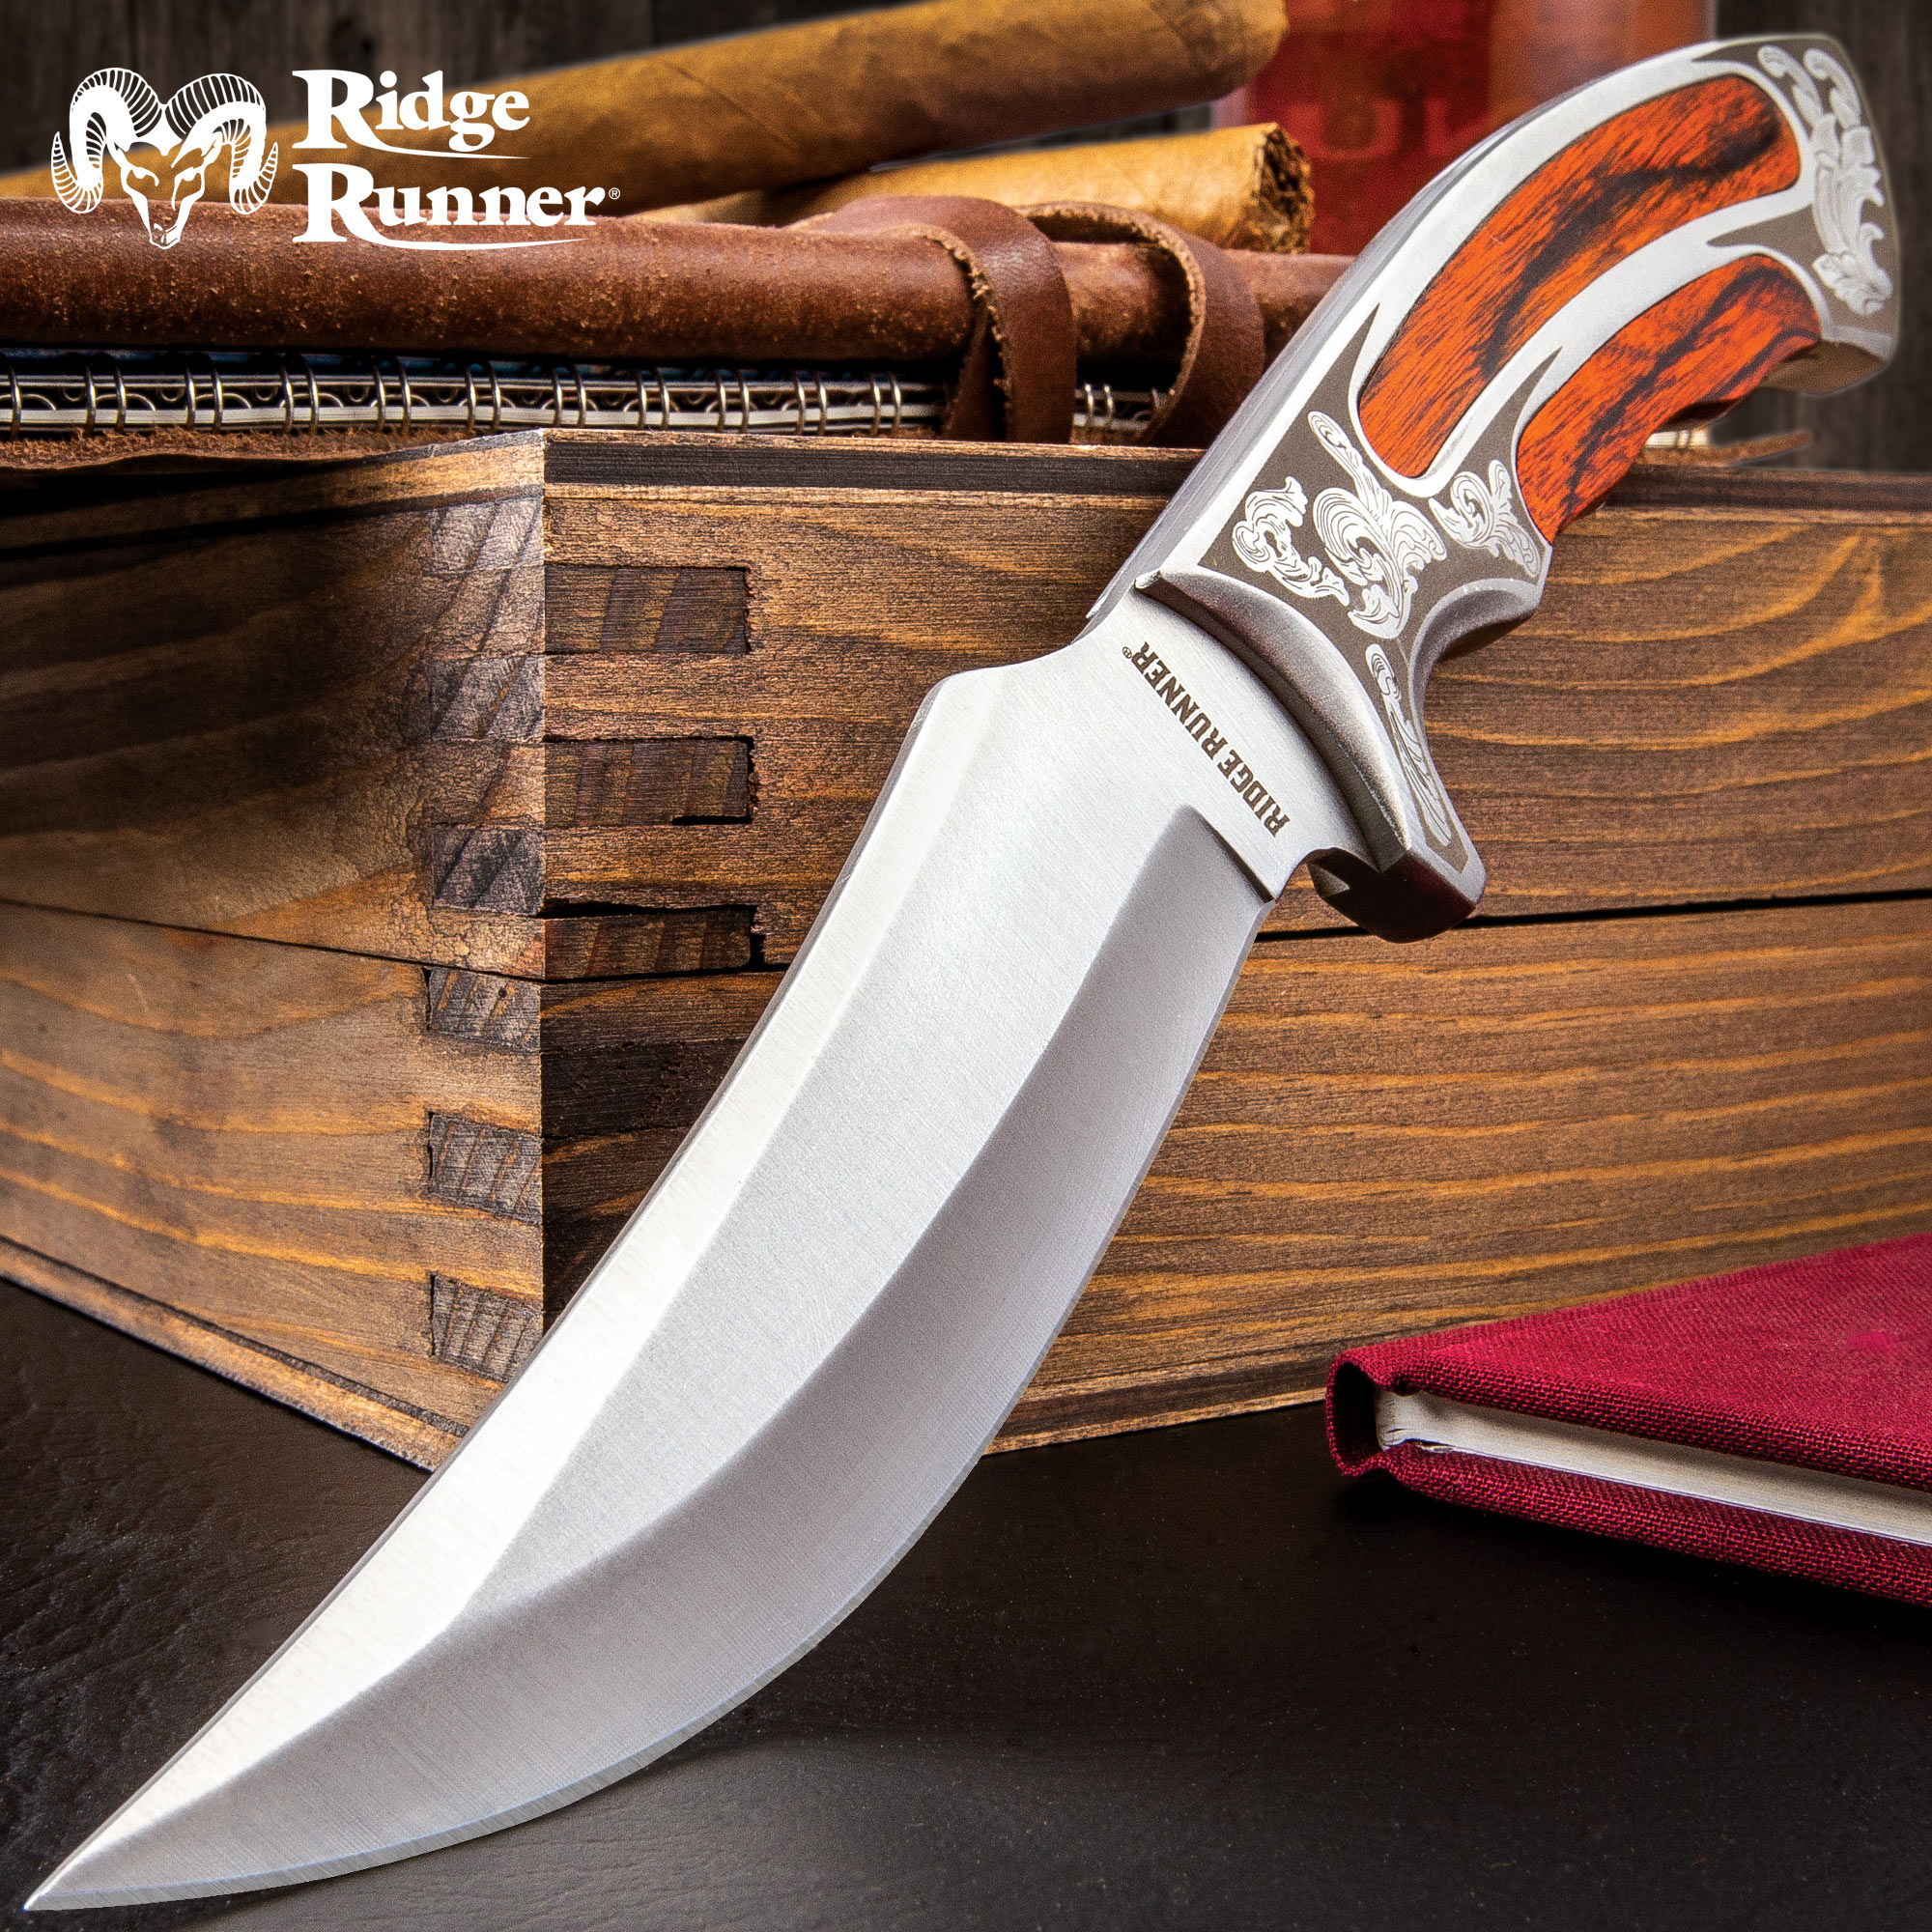 Ridge Runner Full Tang Executive Wooden Bowie Knife With